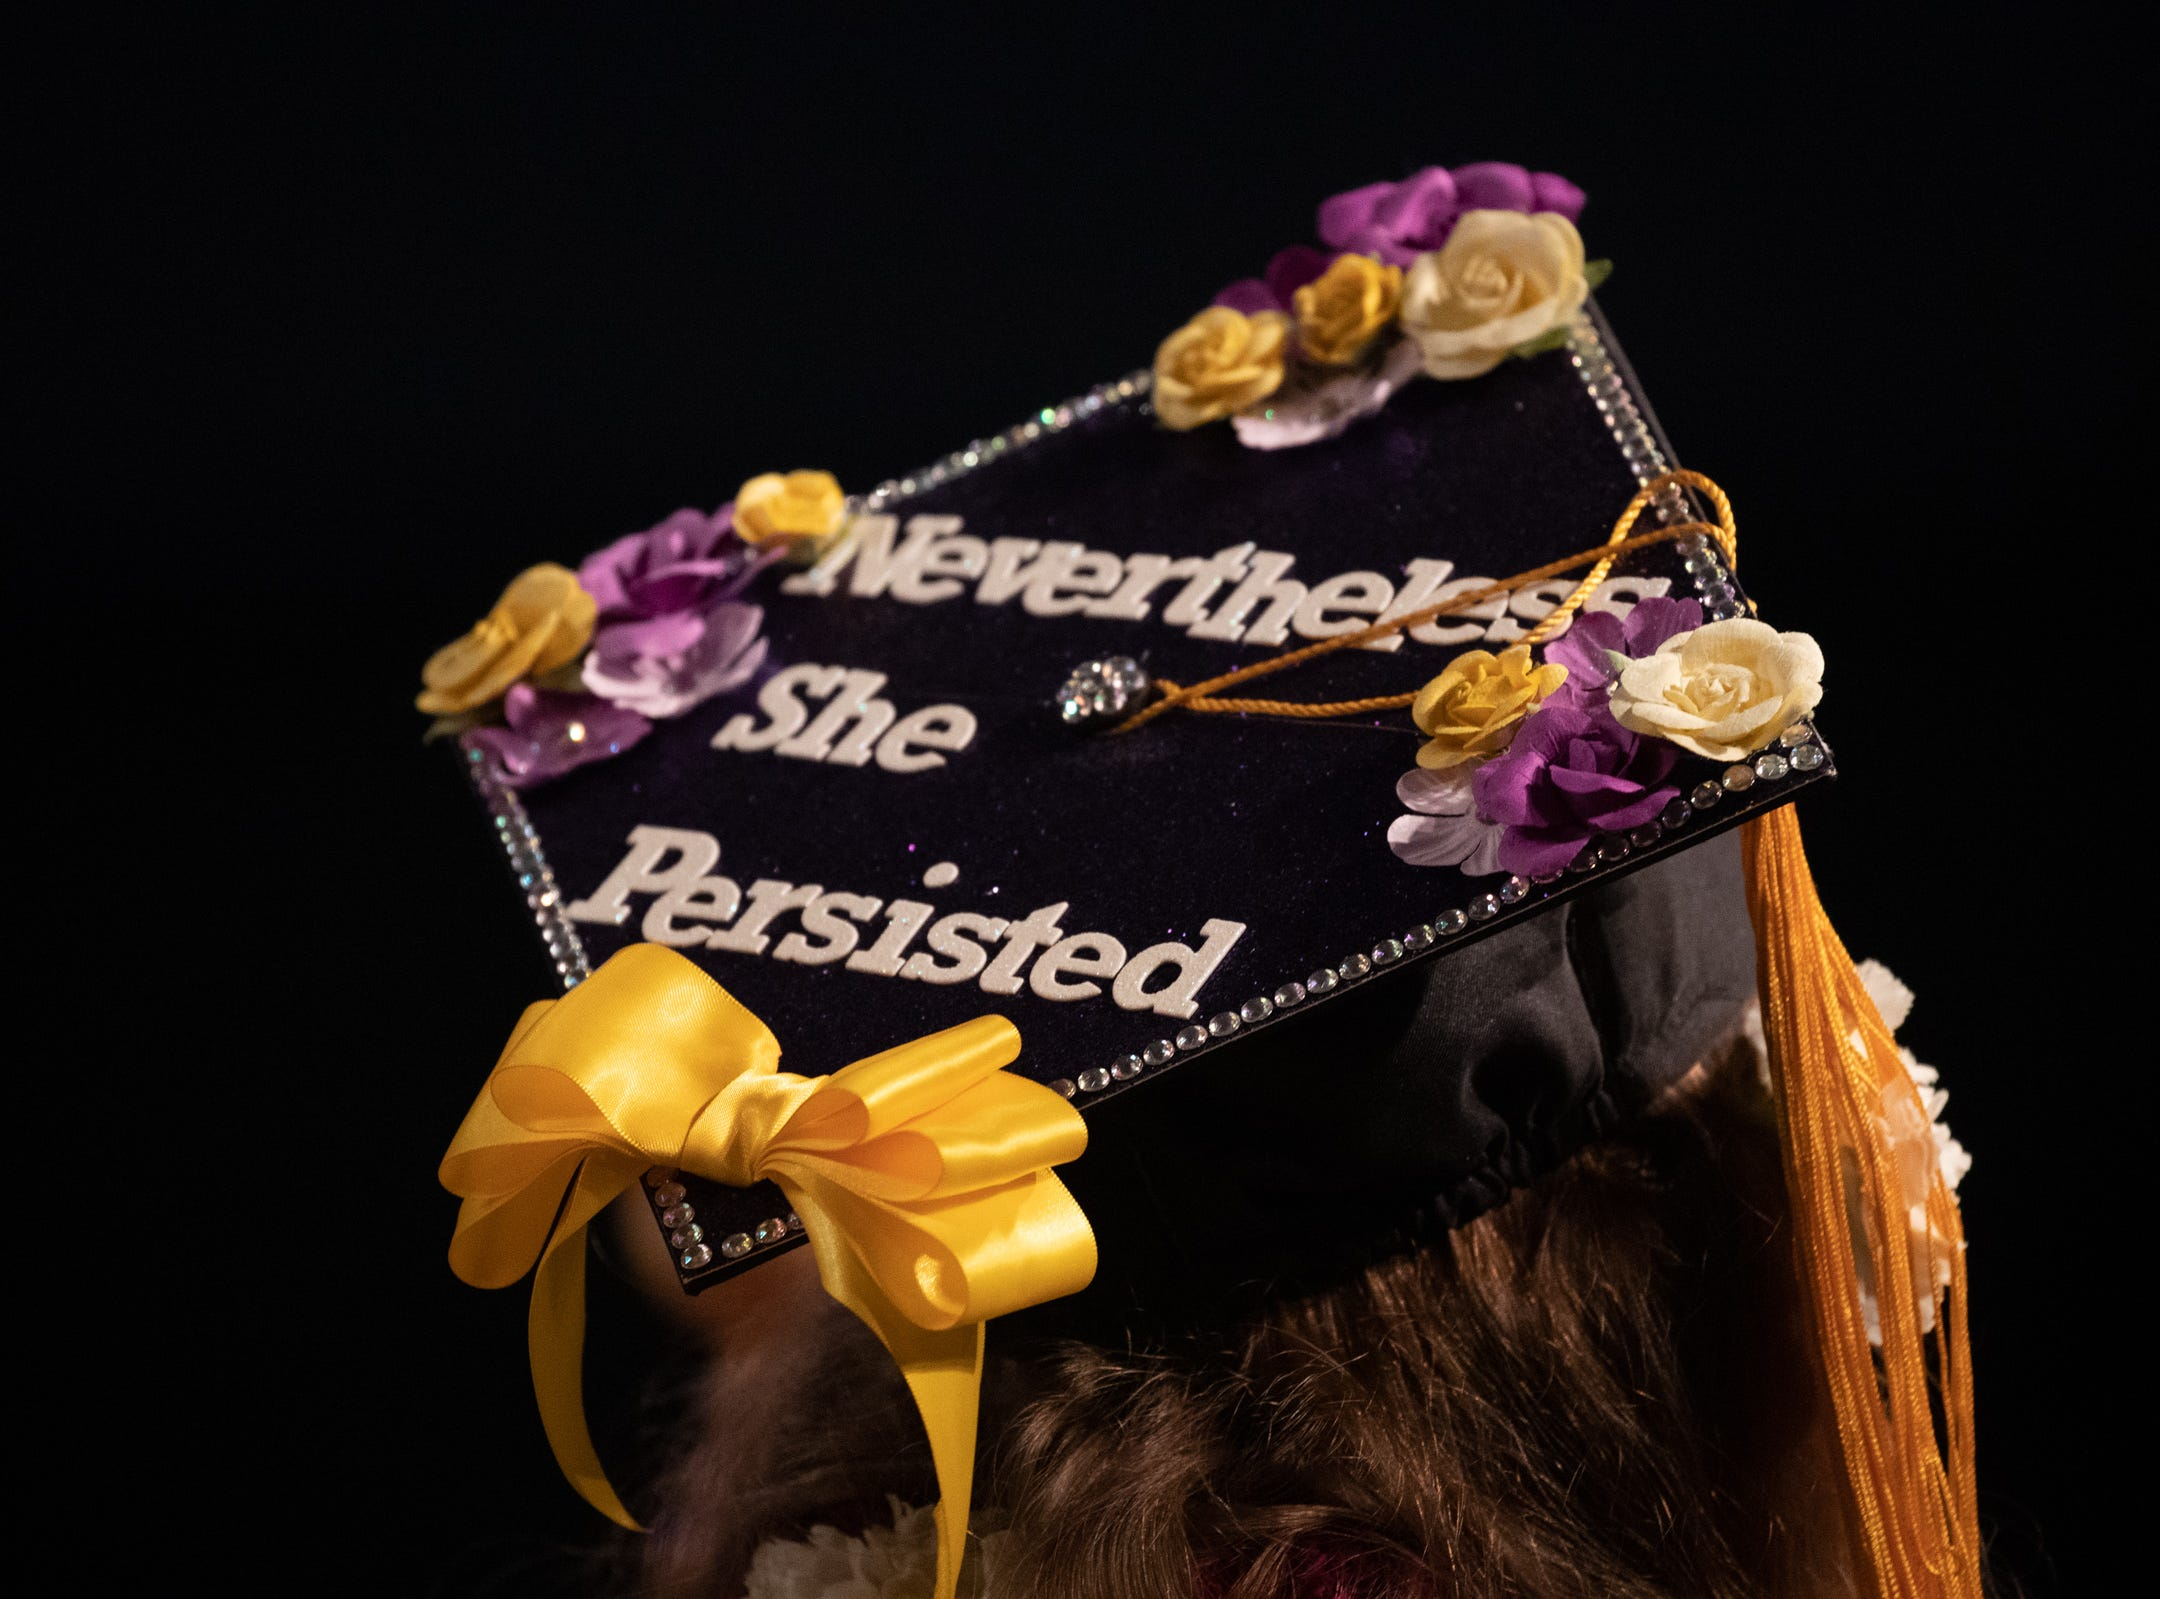 A graduate listens to speakers during the 2018 winter commencement ceremony at the University of Wisconsin-Stevens Point on Saturday, Dec. 15, 2018, in Stevens Point.